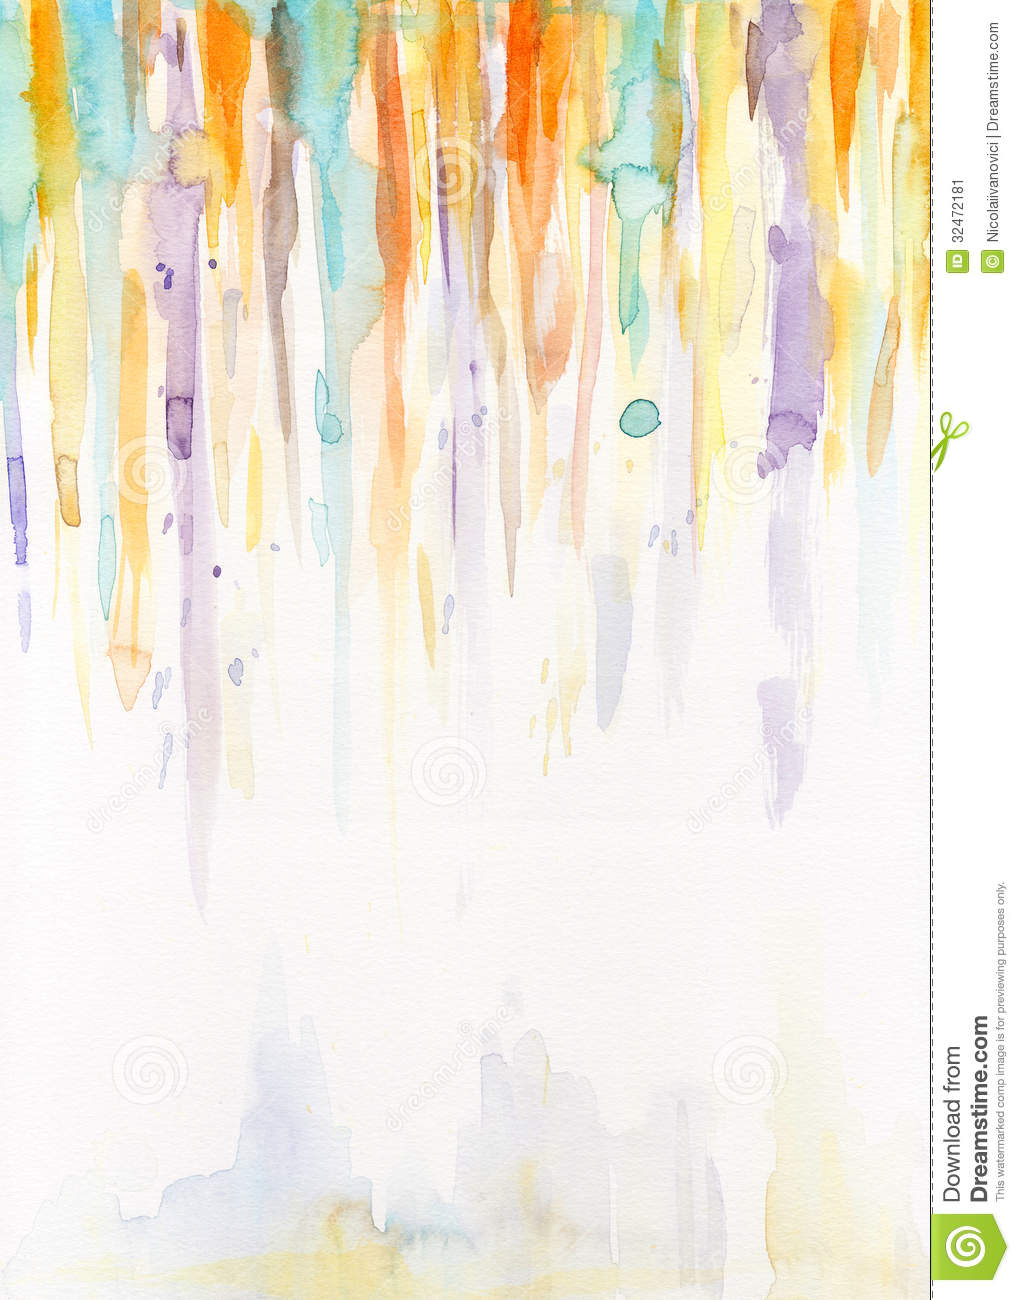 Watercolor Lines Stock Image - Image: 32472181